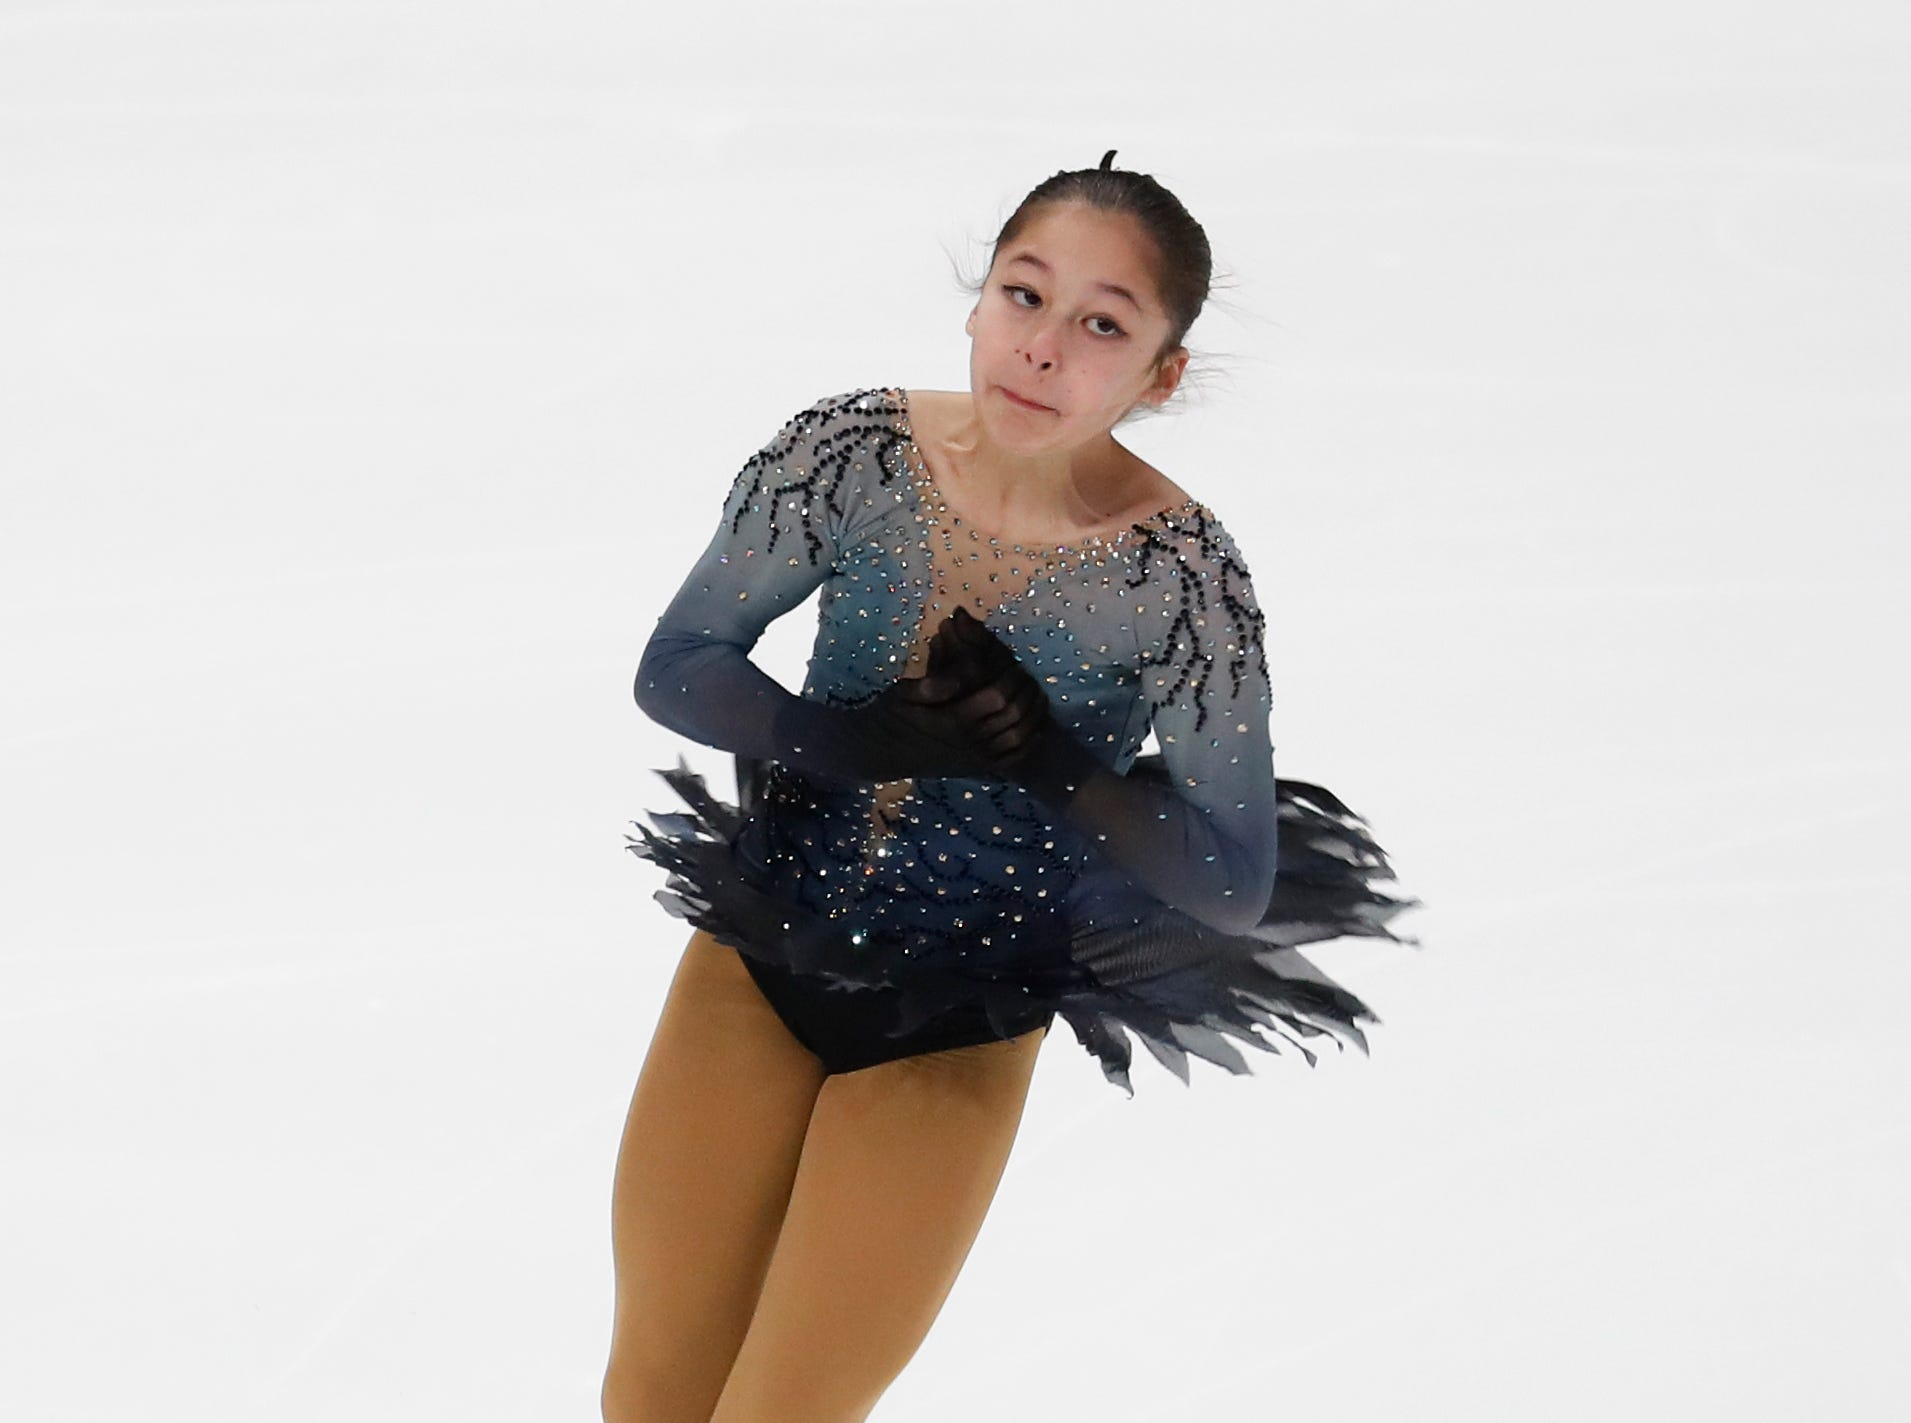 Alysa Liu performs during the women's free skate at the U.S. Figure Skating Championships, Friday.